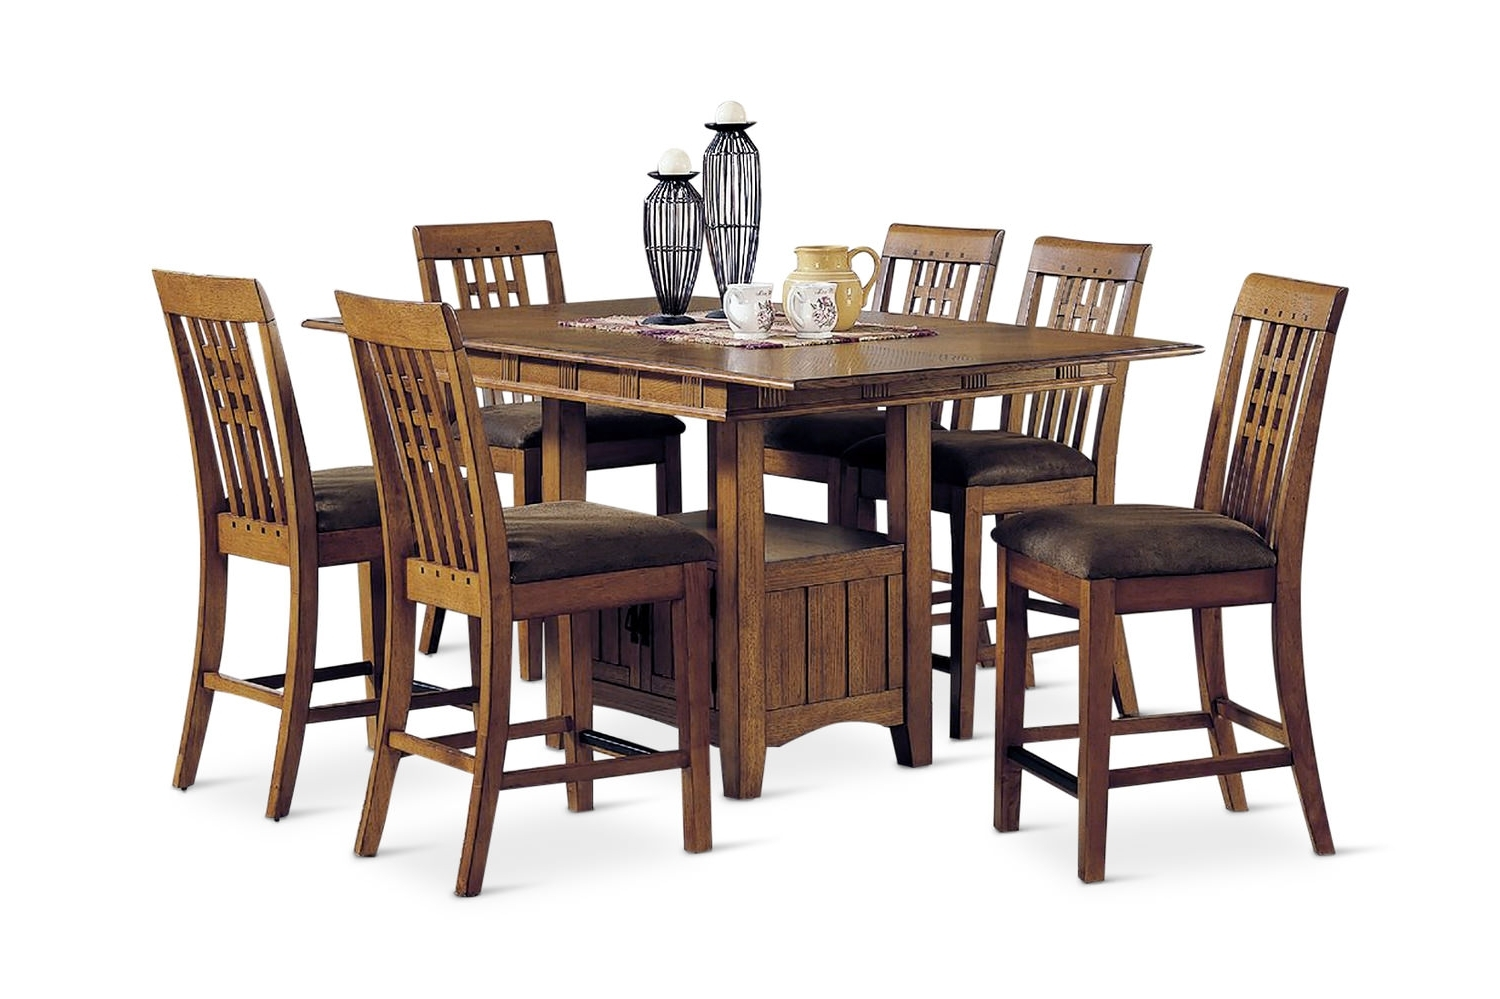 Dining Sets – Kitchen & Dining Room Sets – Hom Furniture For Preferred Craftsman 5 Piece Round Dining Sets With Uph Side Chairs (View 15 of 25)